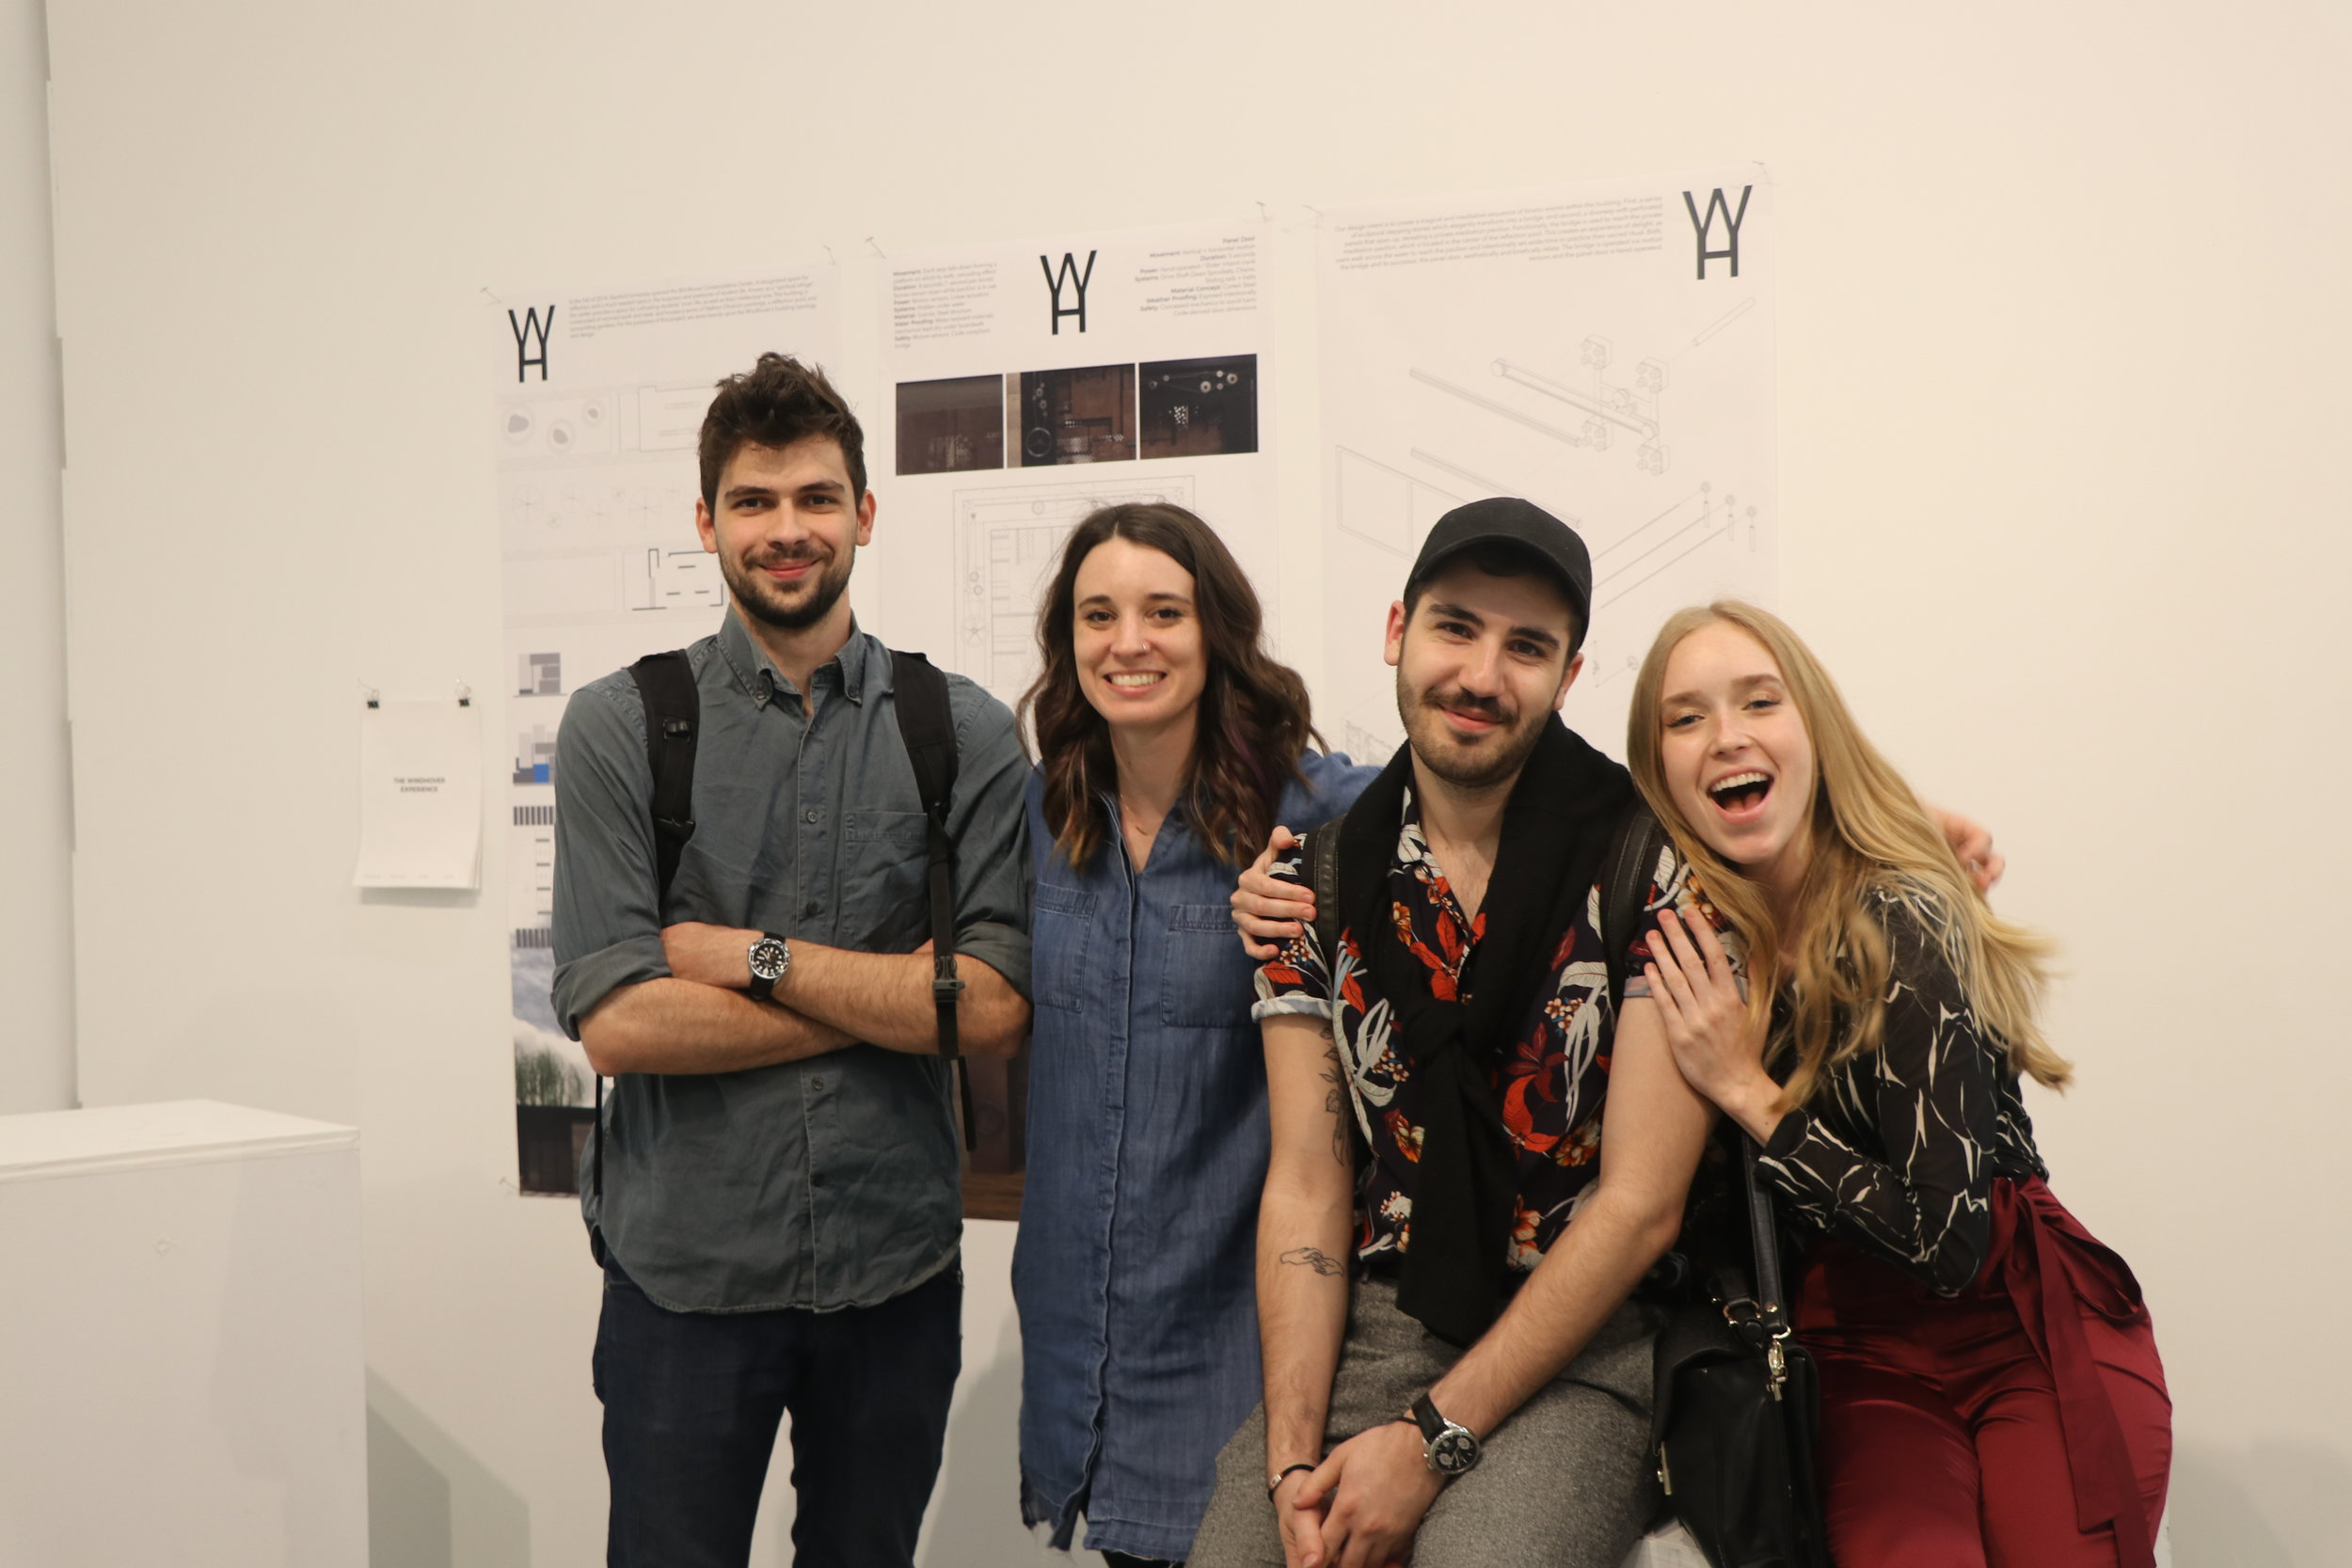 Final presentation at Emily Carr University with (left to right) Alex Zara, Alisha Camden, Kerem Dogurga (me) and Julia May.